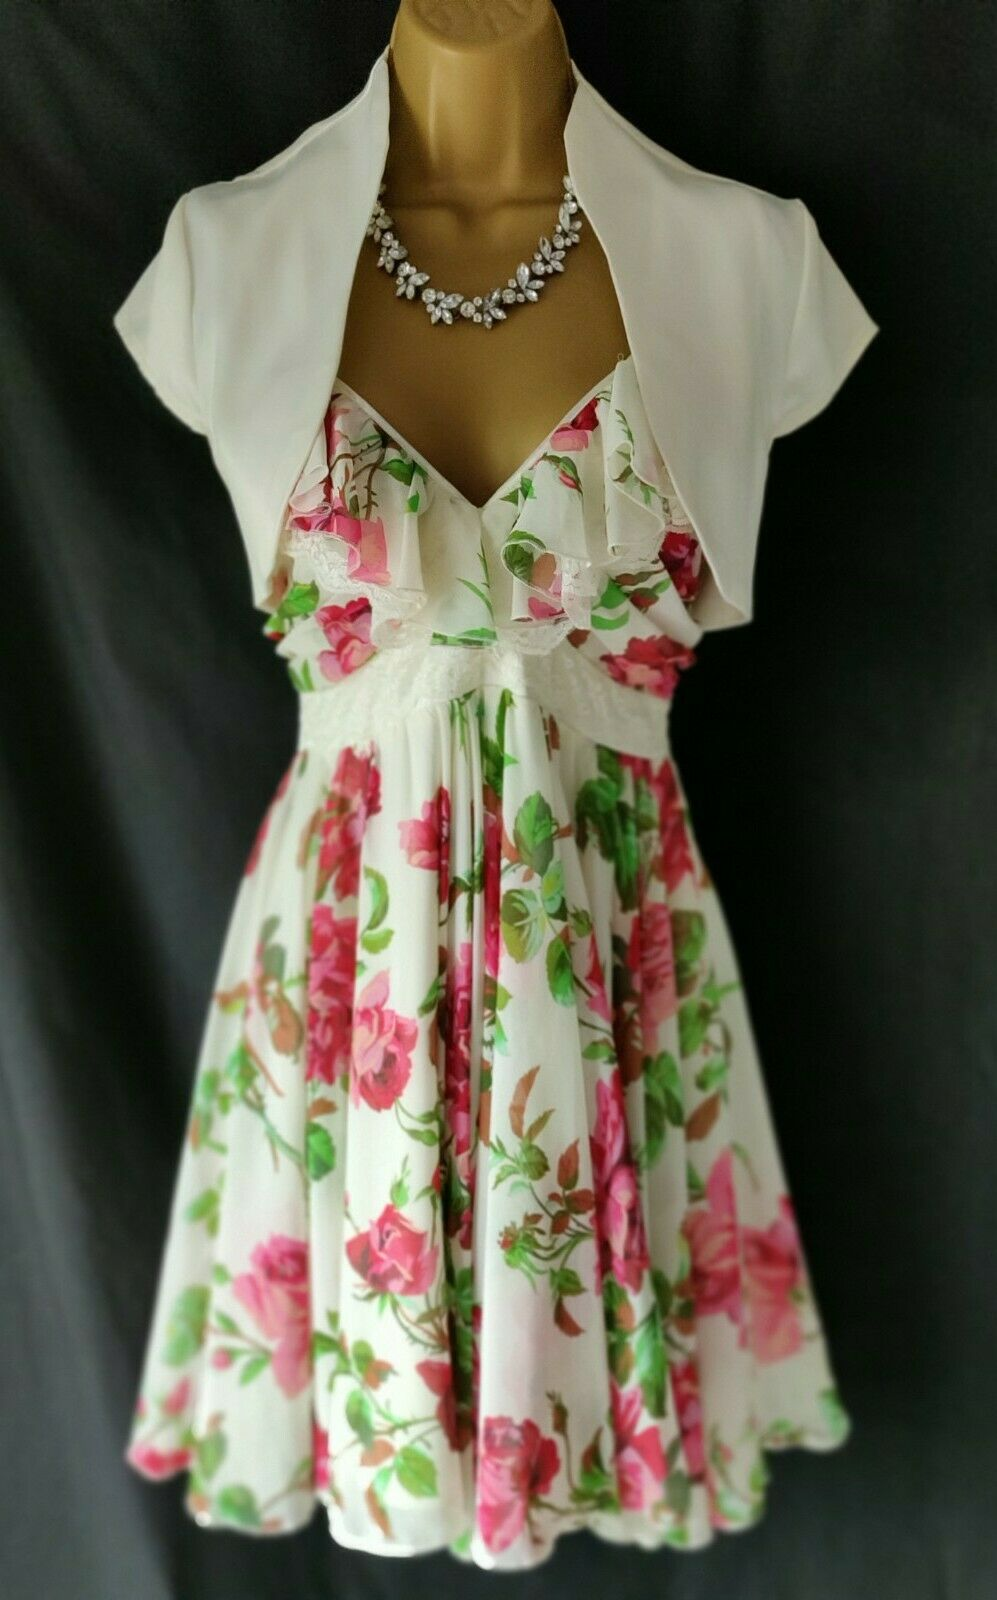 Ladies/Women's Ivory, Pink & Green Wedding Outfit Size UK10